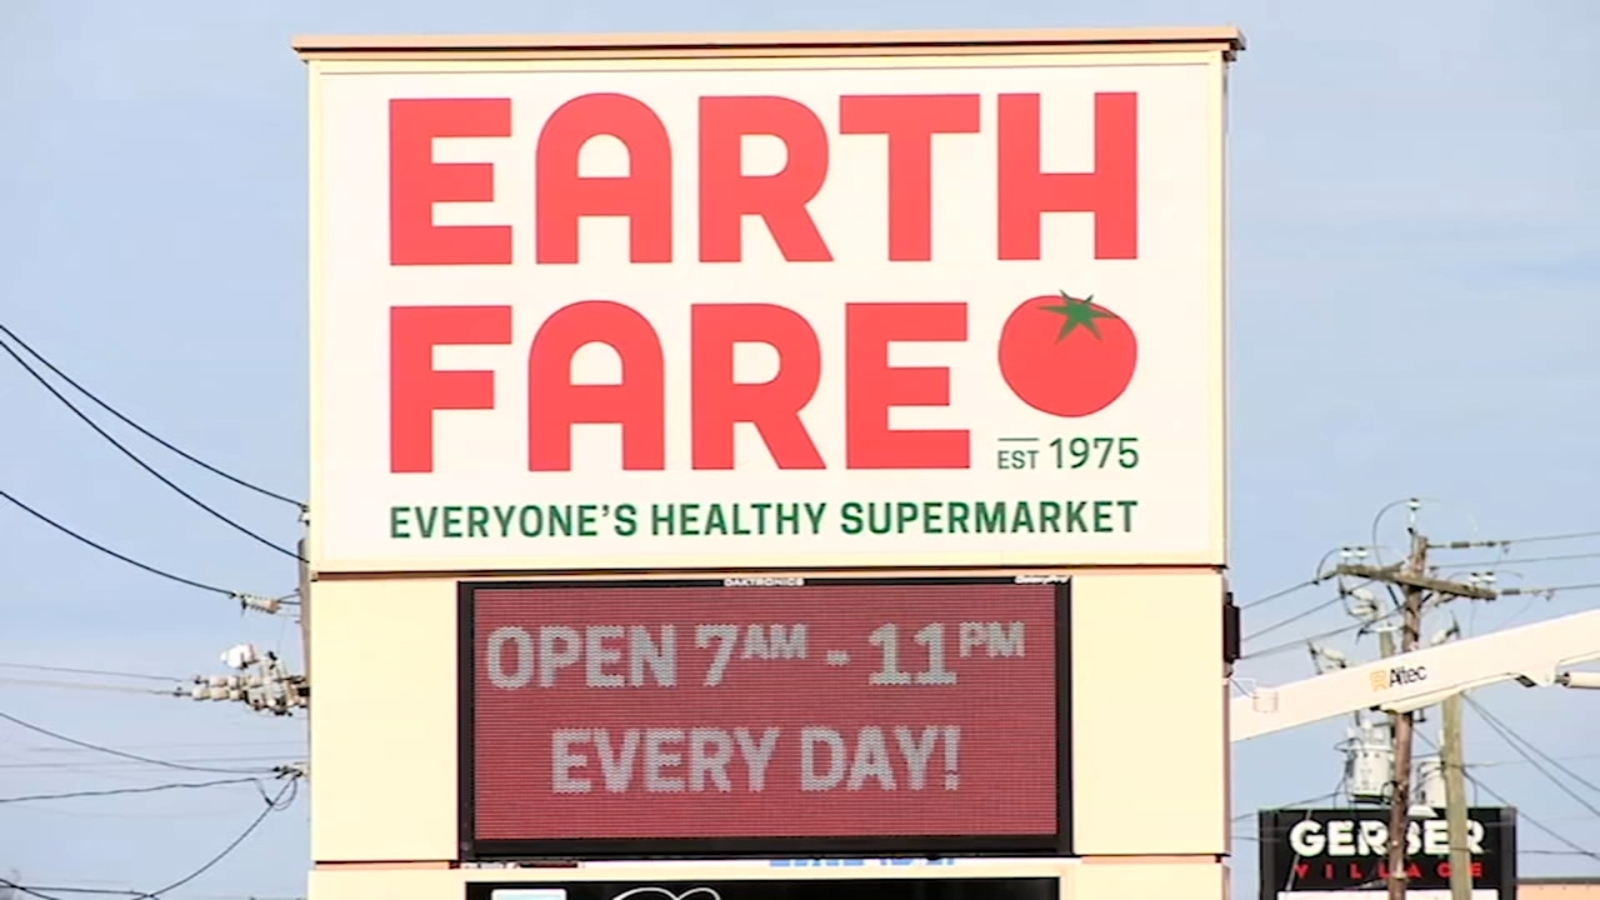 NC-based Earth Fare to officially close its doors this week